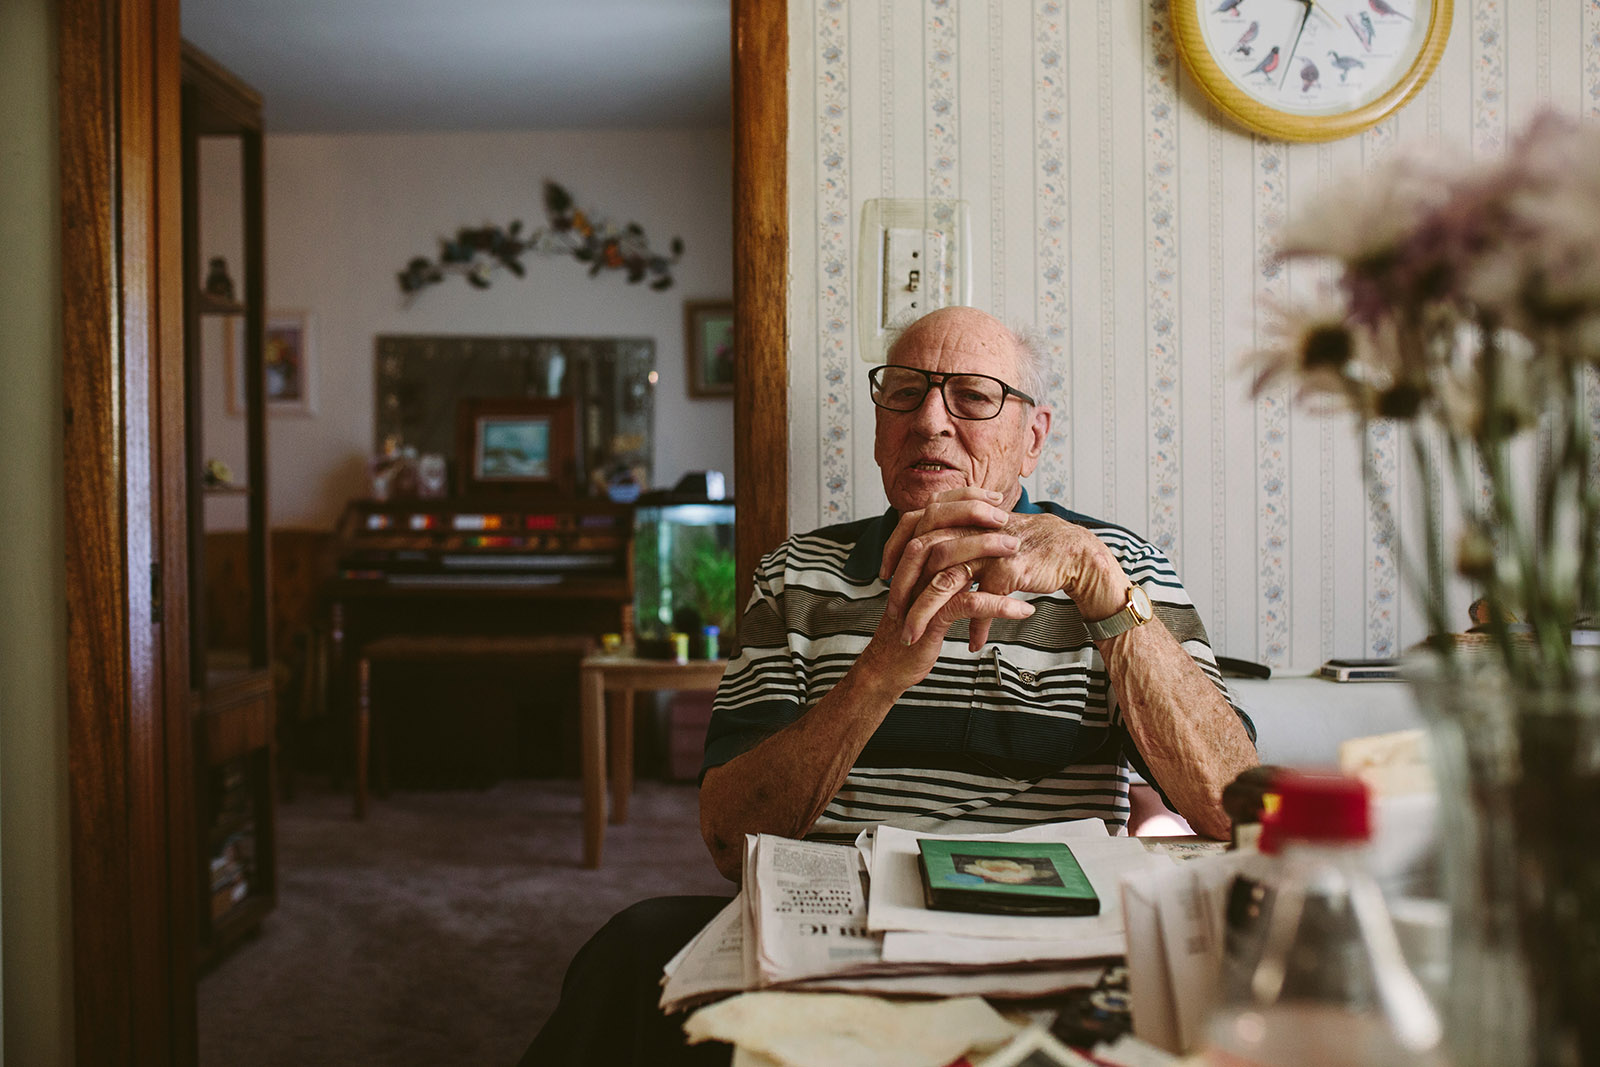 There are six key frames a documentary photographer can take to creating a more compelling narrative. Let's walk through what they are and how I used them using the documentary I created about Marshall.